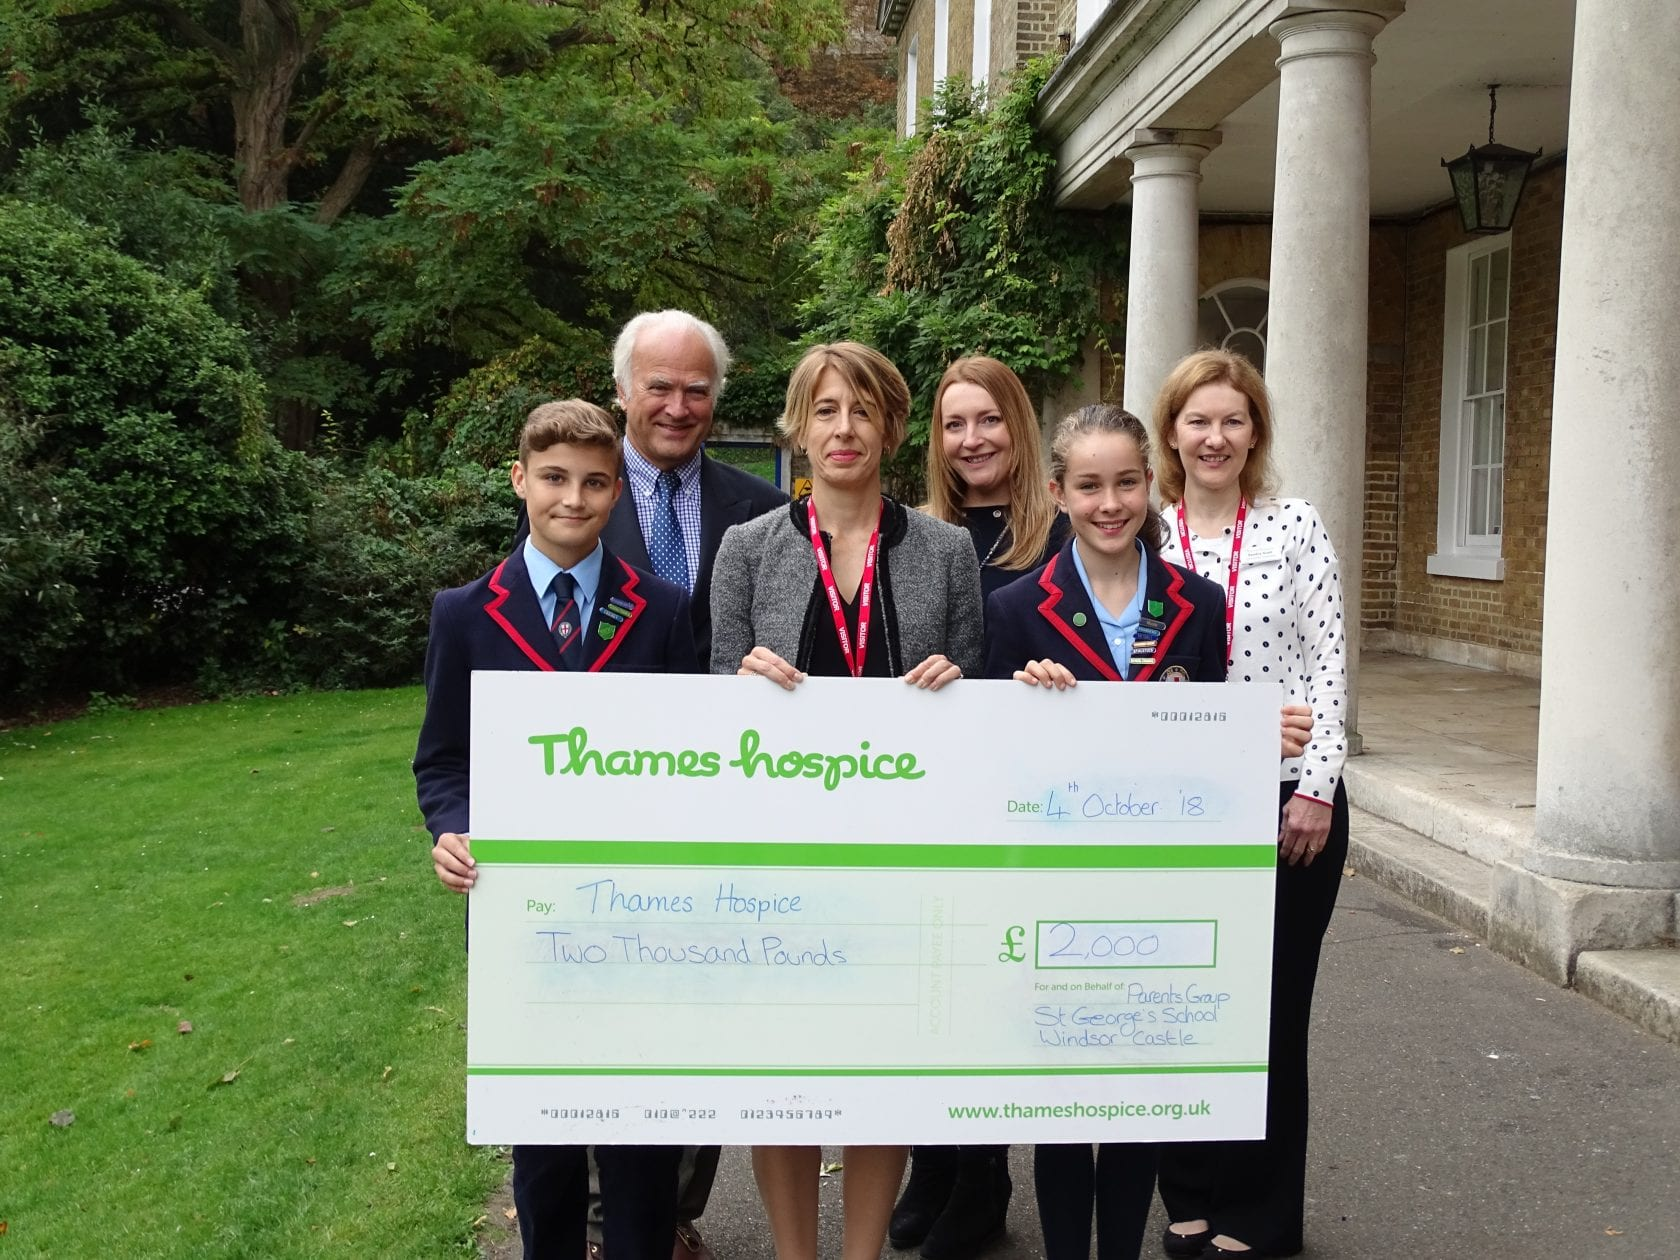 Parents' Group raises money for Thames Hospice